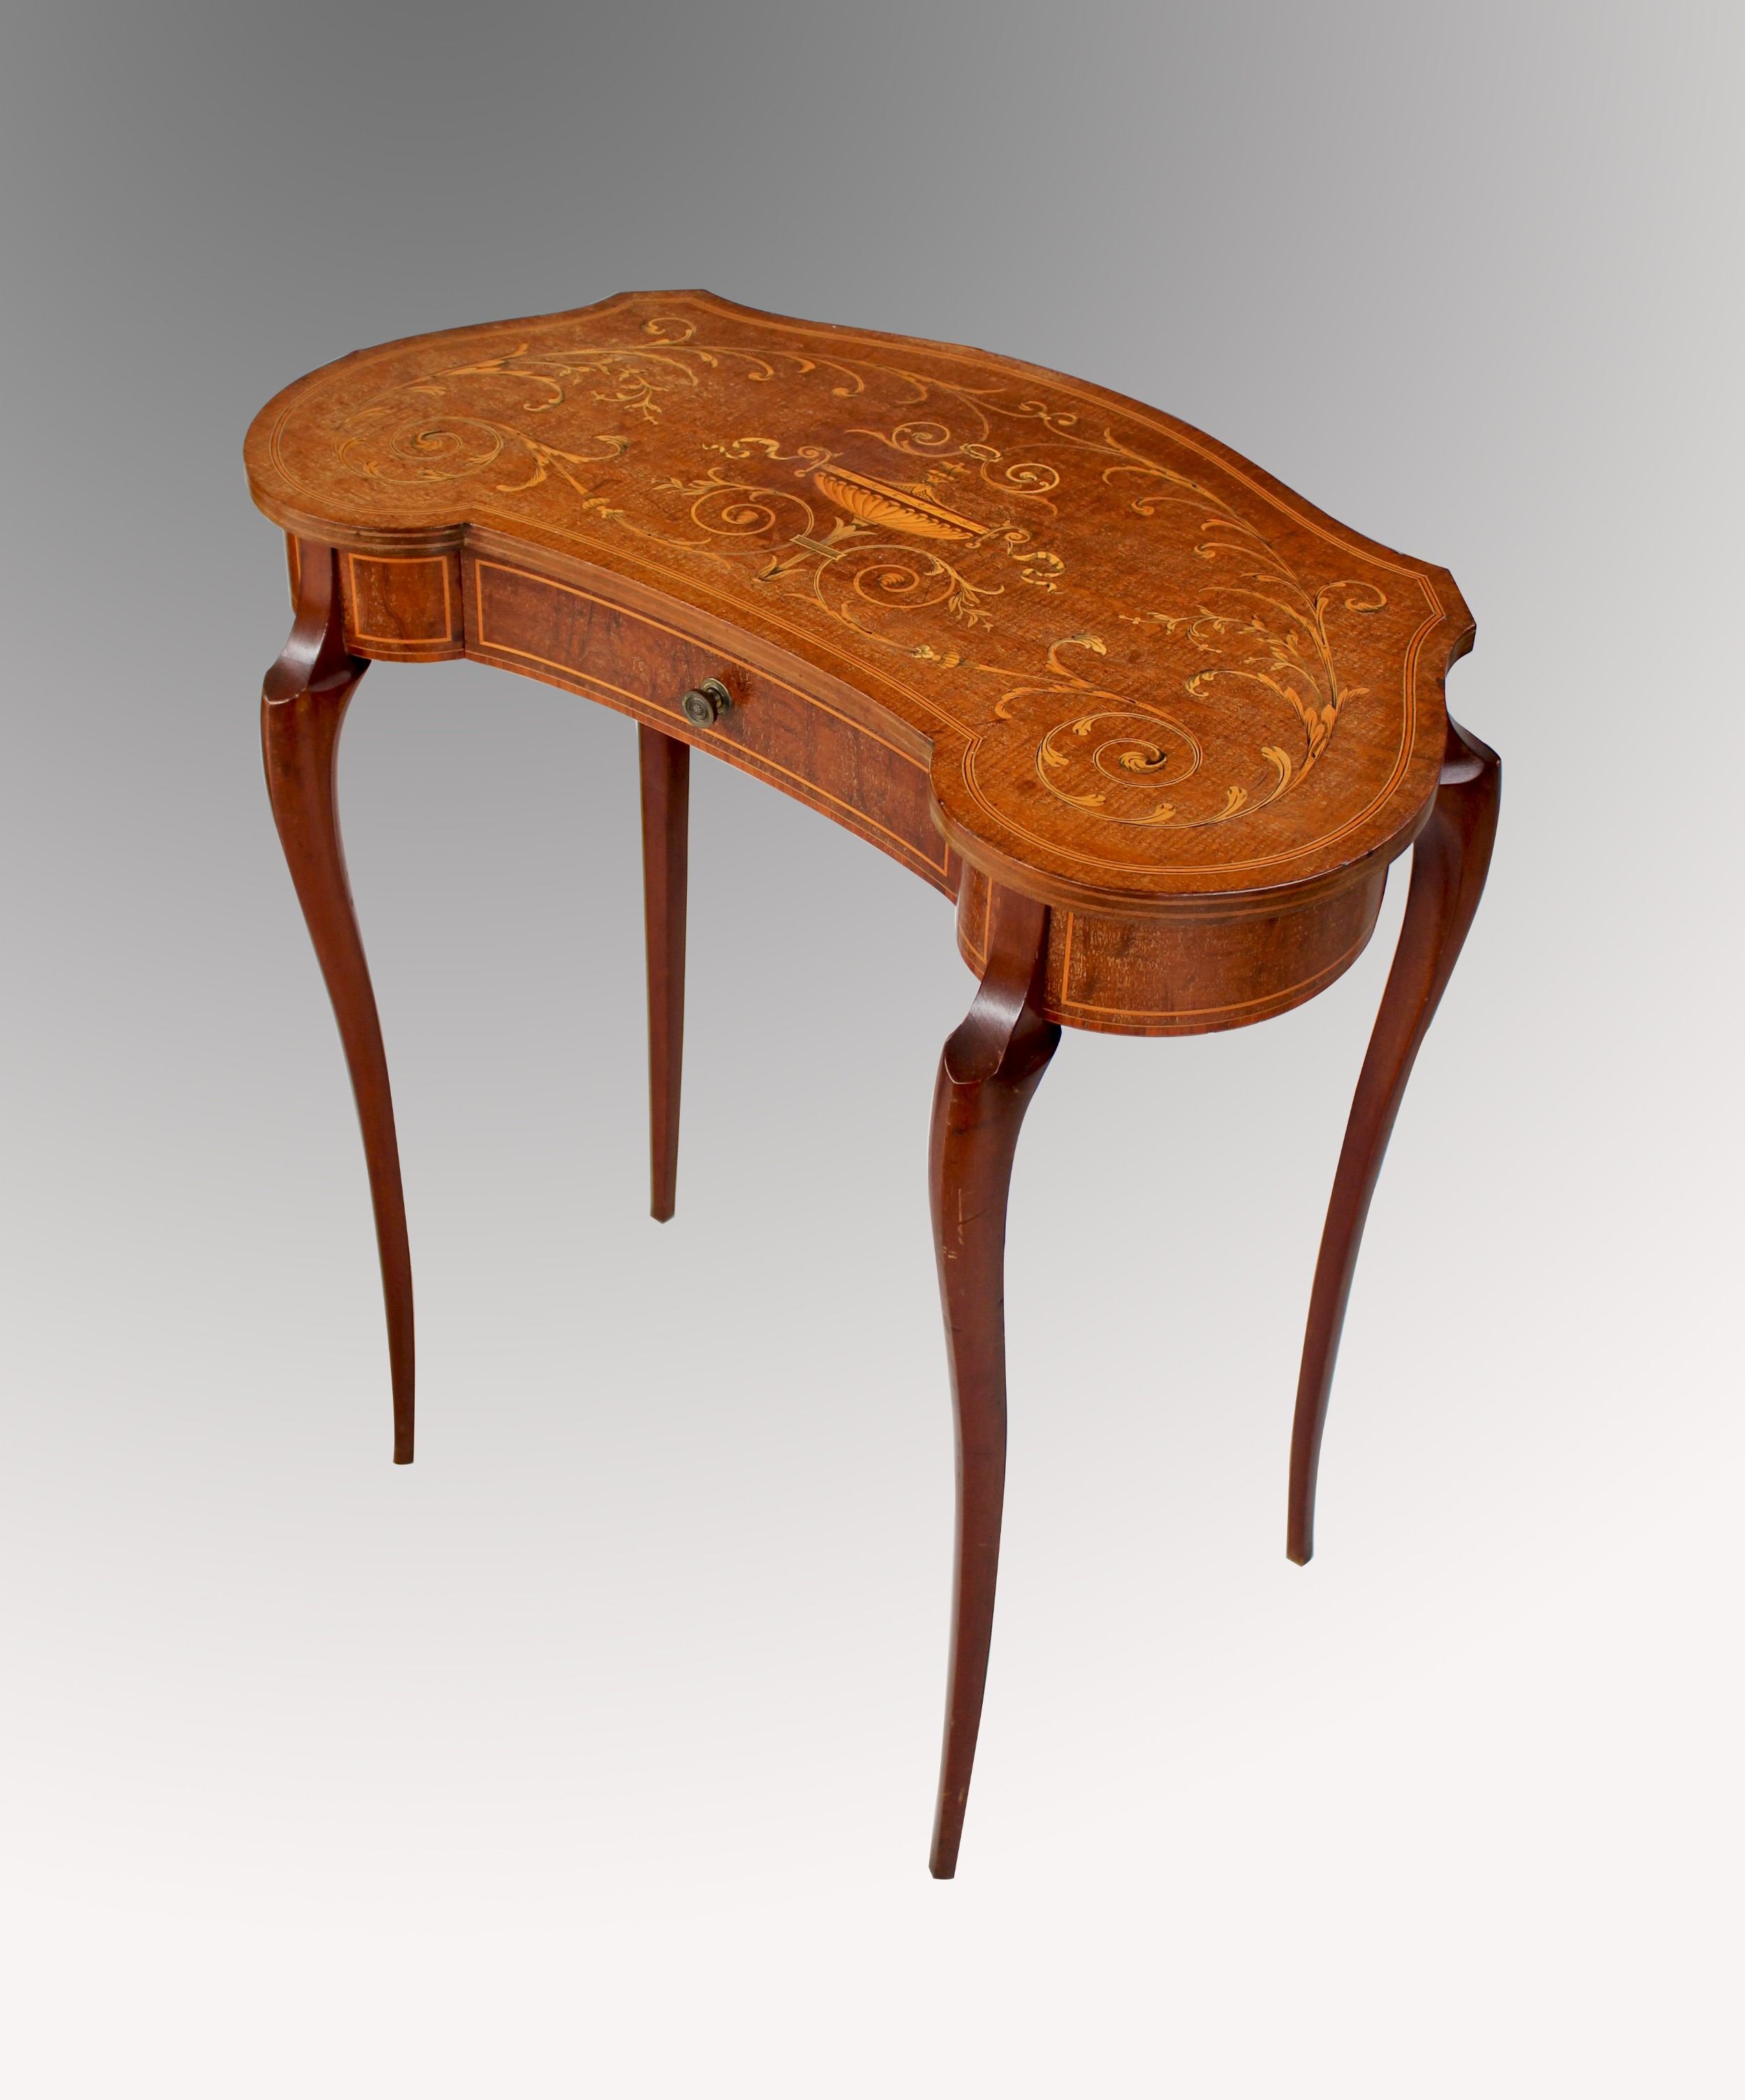 an edwardian mahogany and satinwood marquetry inlaid kidney shaped side table